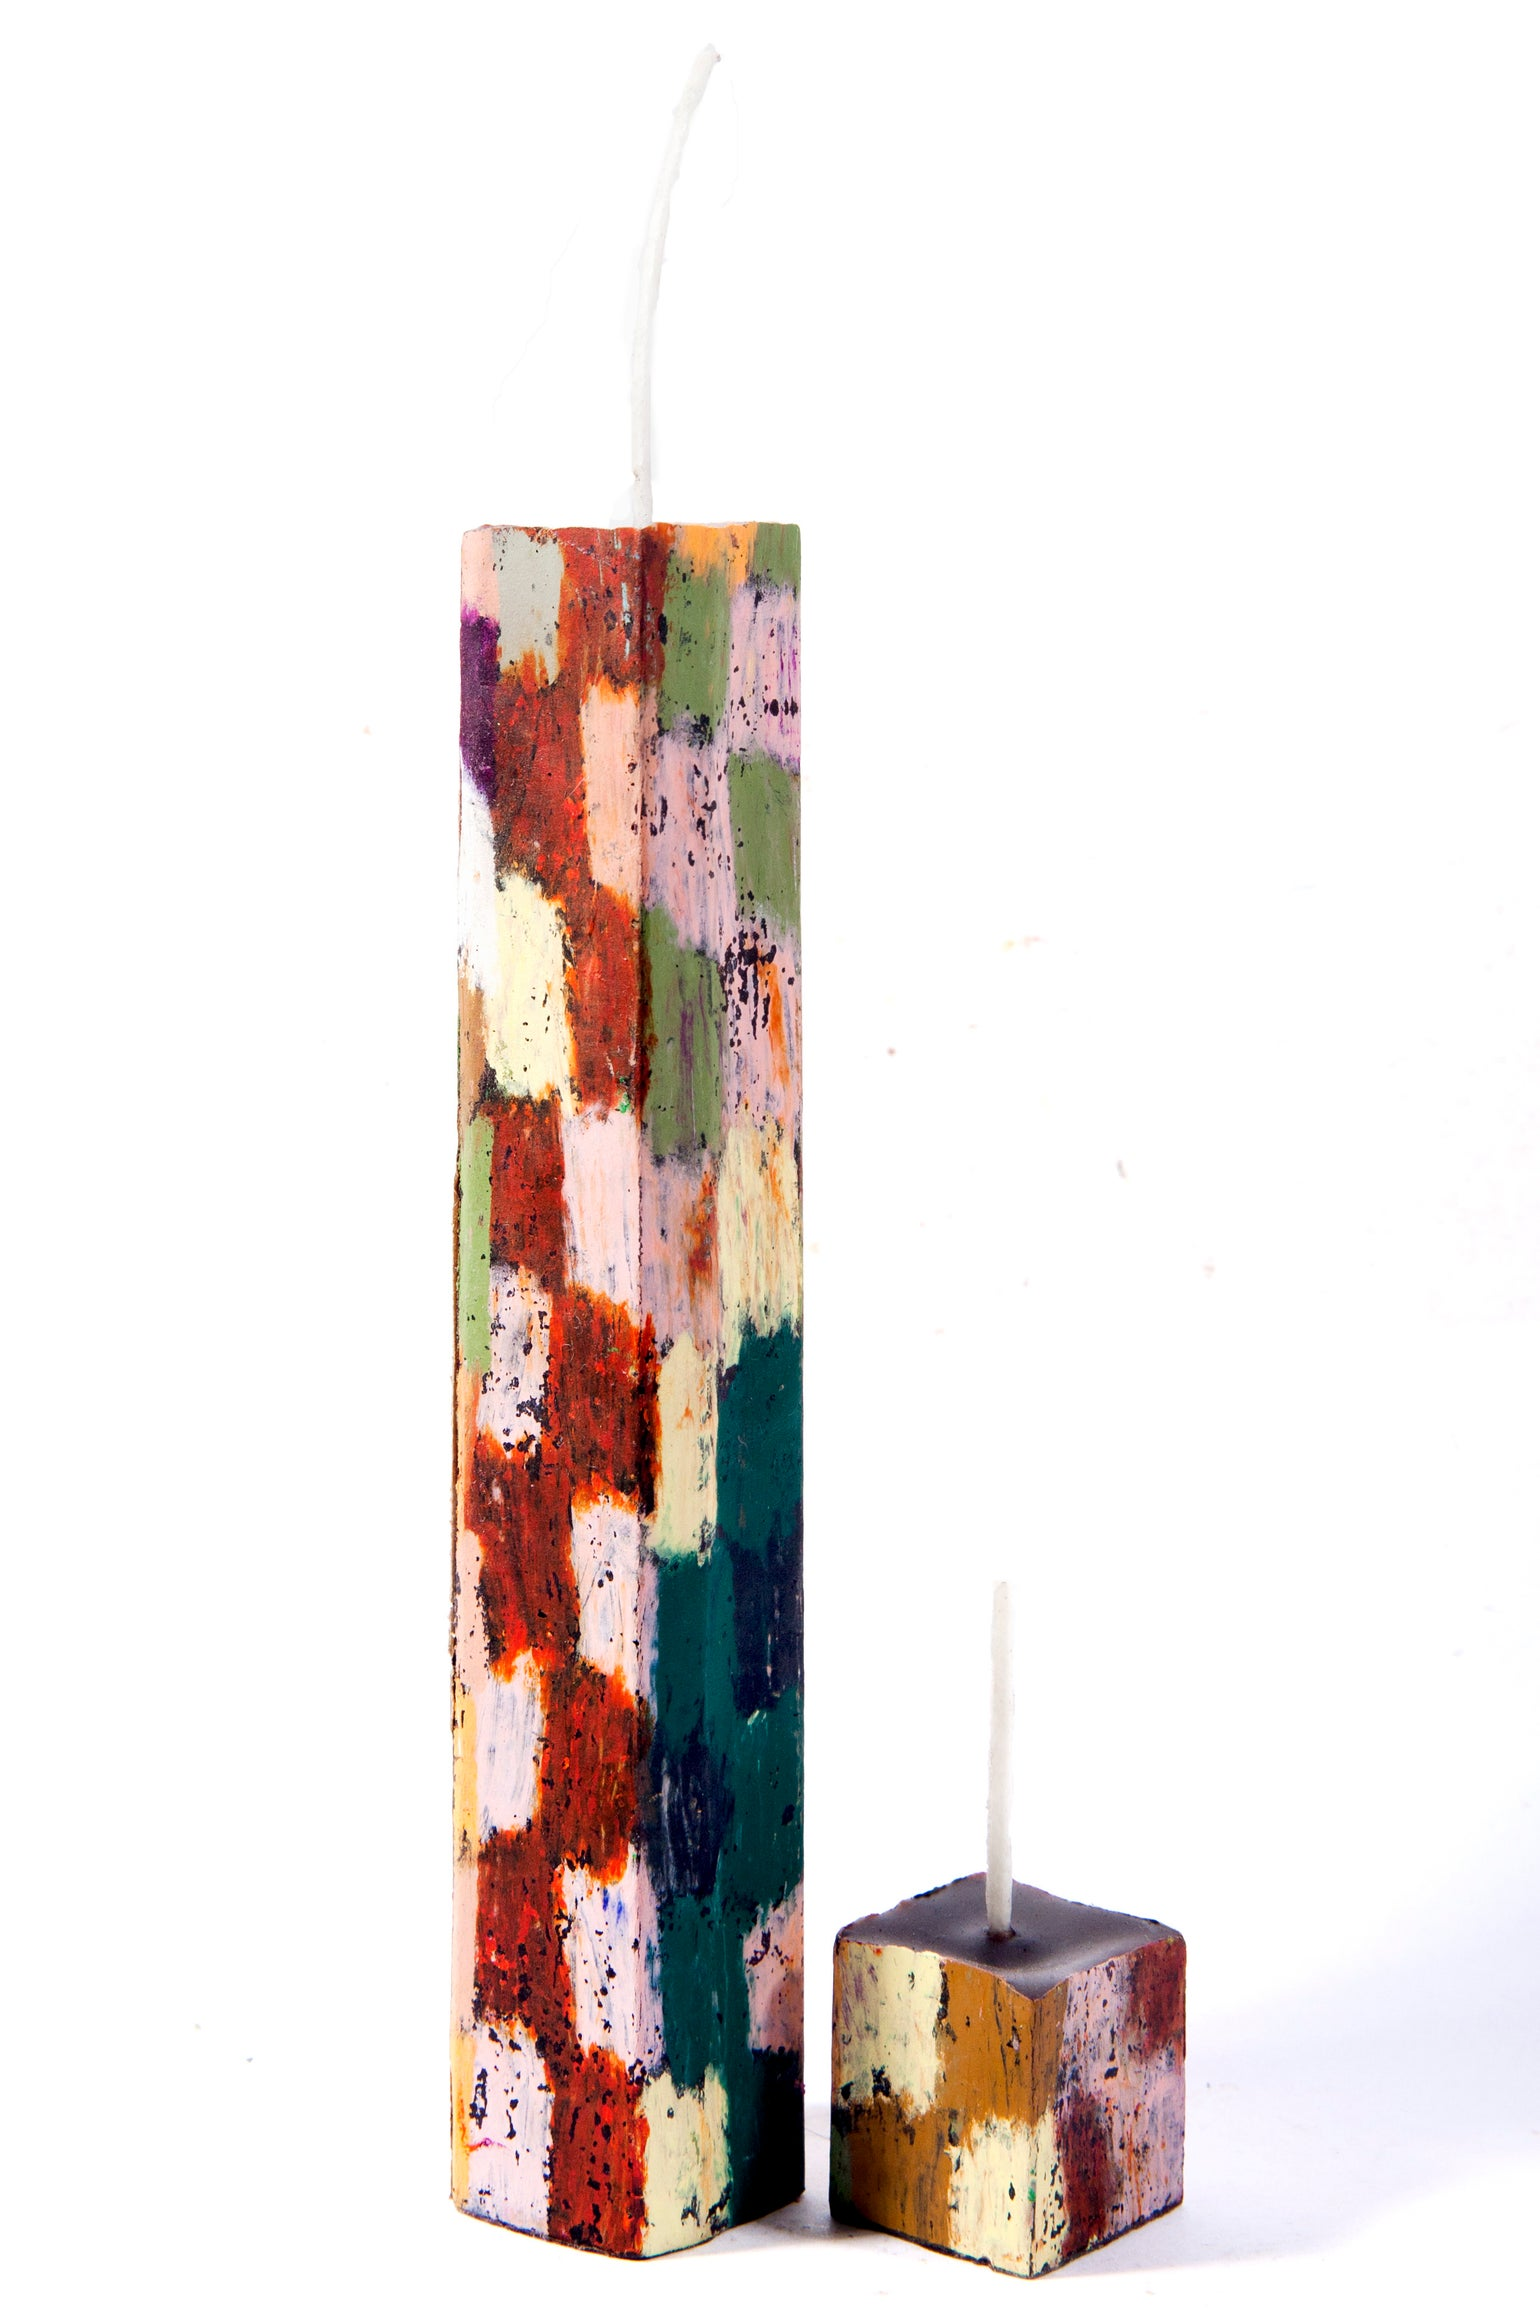 Image of Tall Stack Tower Mother & Child in greens, black, reds, yellow, pink, brown, orange, white & grey